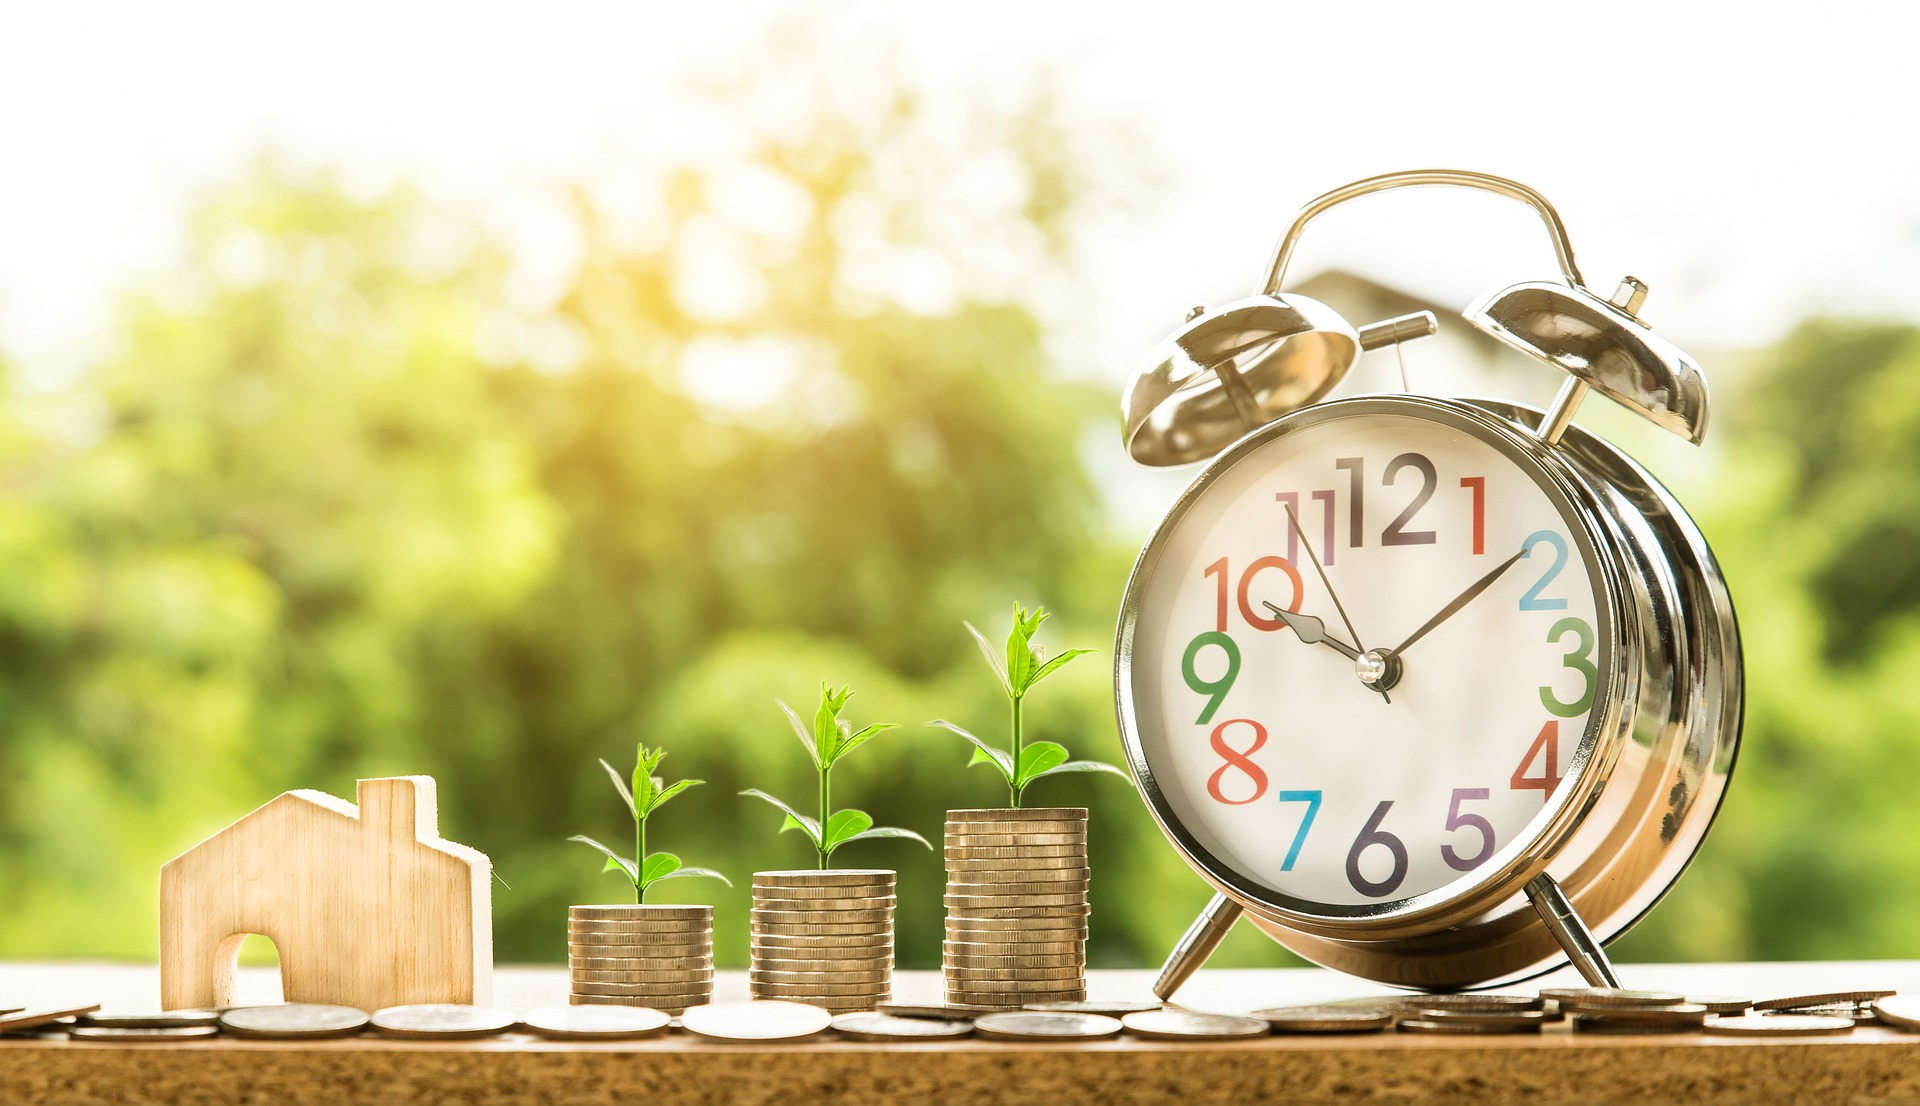 Time + money = a better financial future (Image Credit: Pixabay)